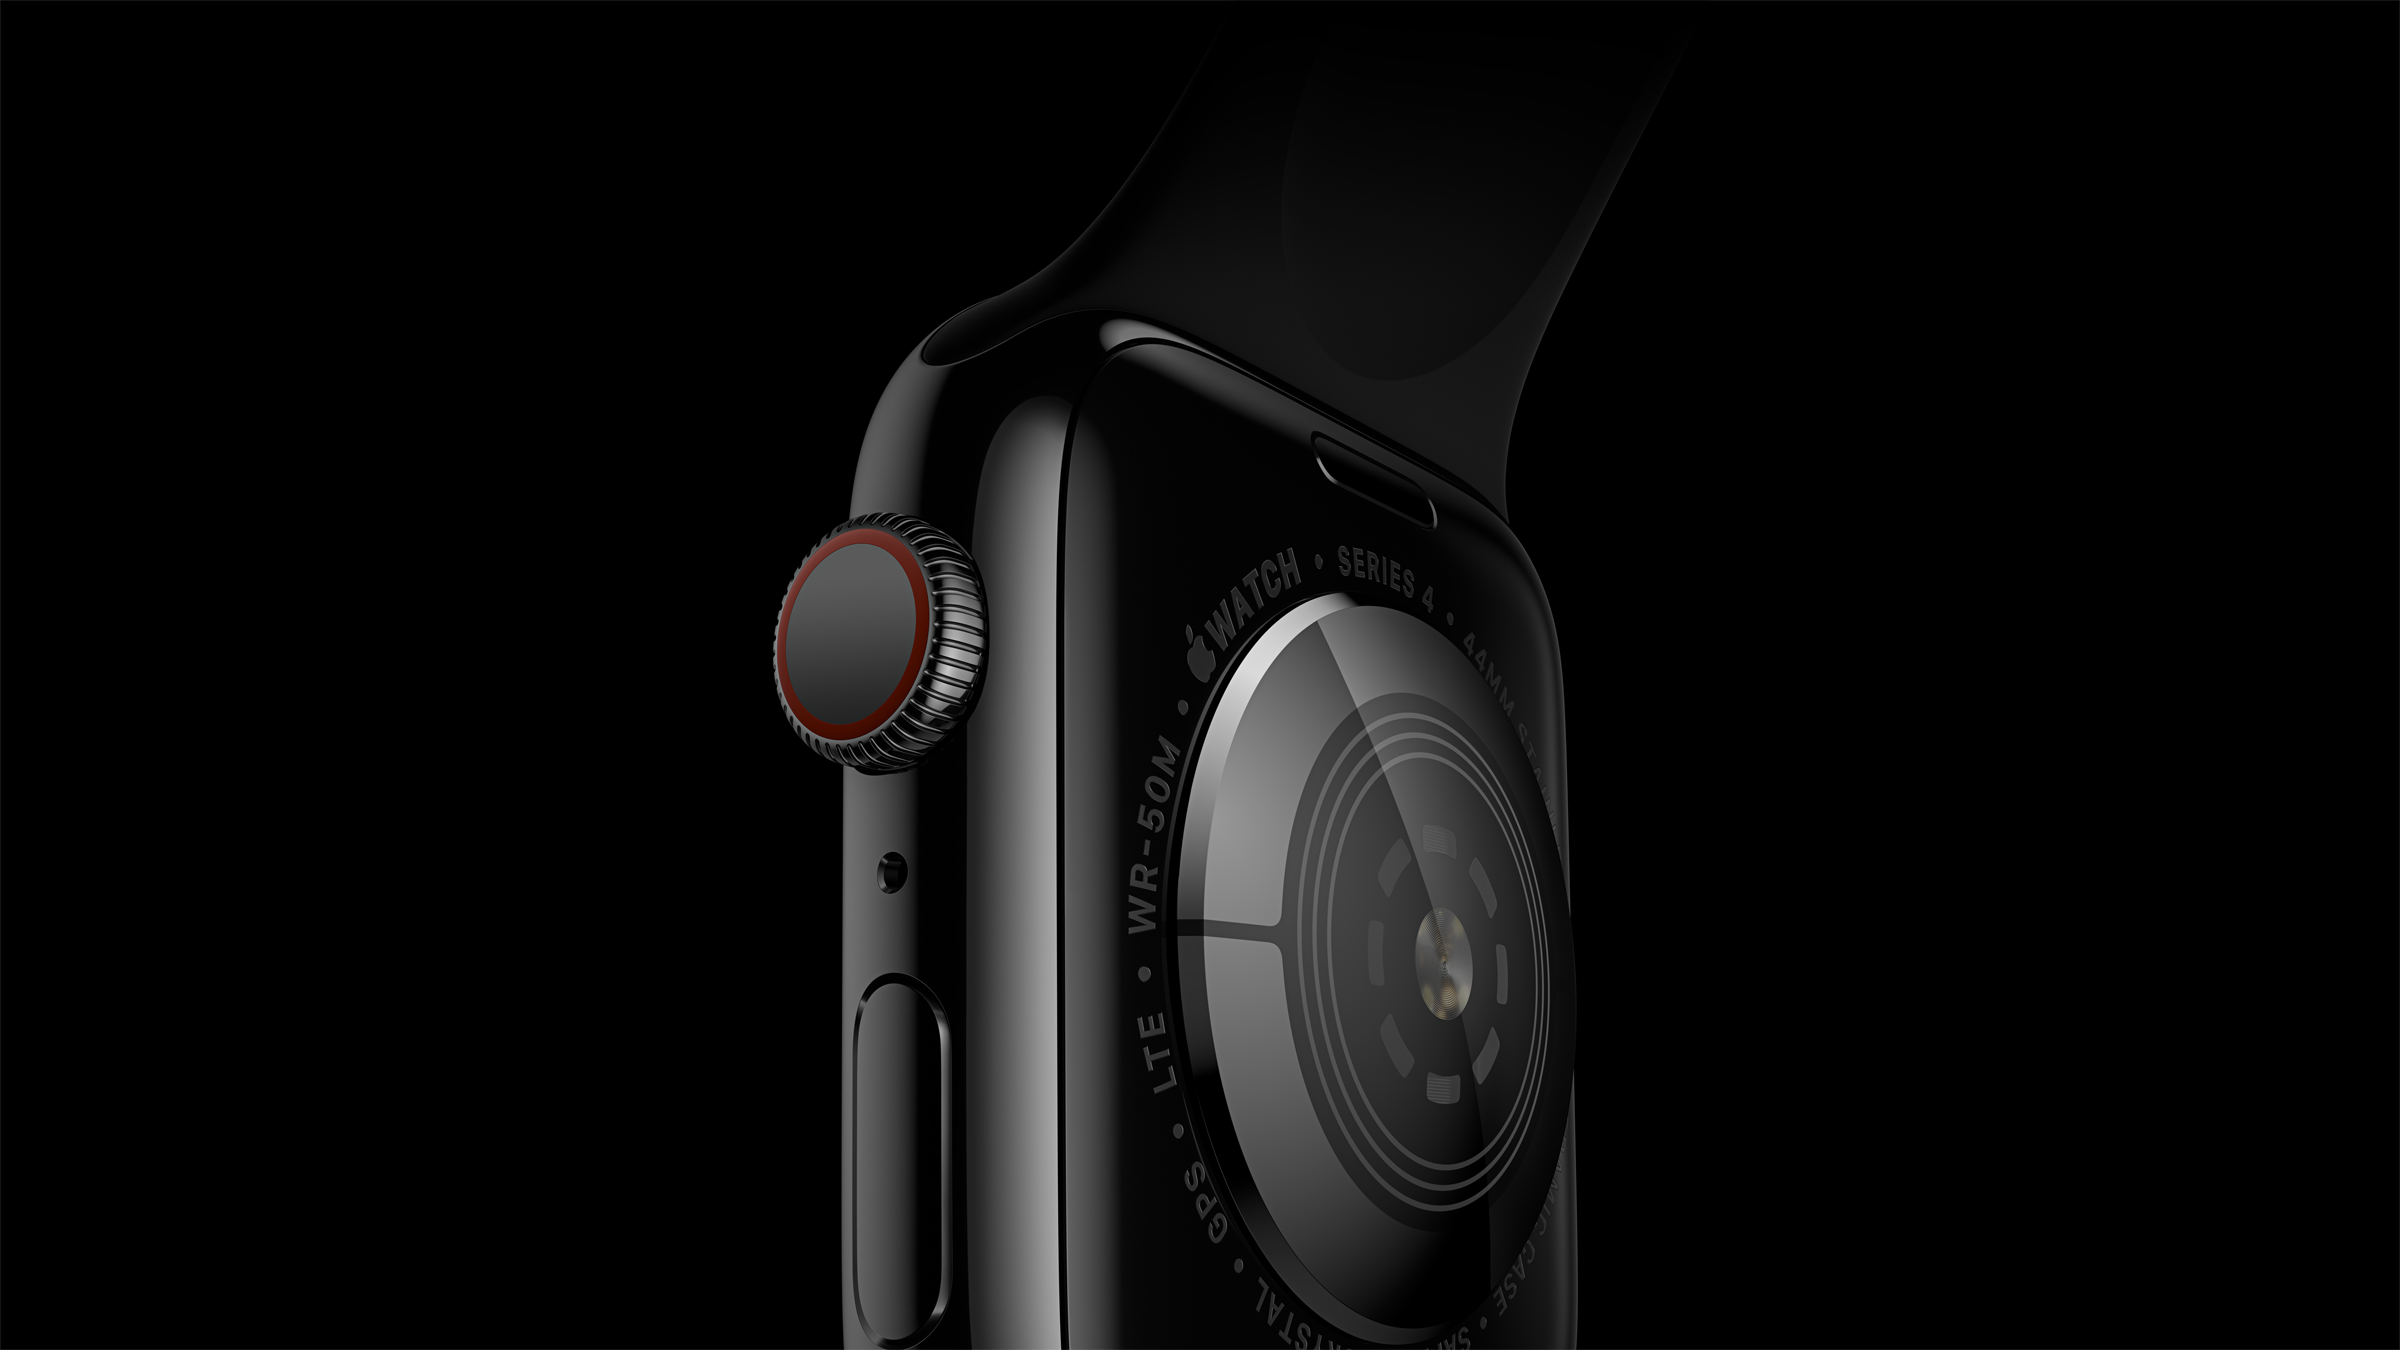 Apple Watch Series 4 - Rückseite